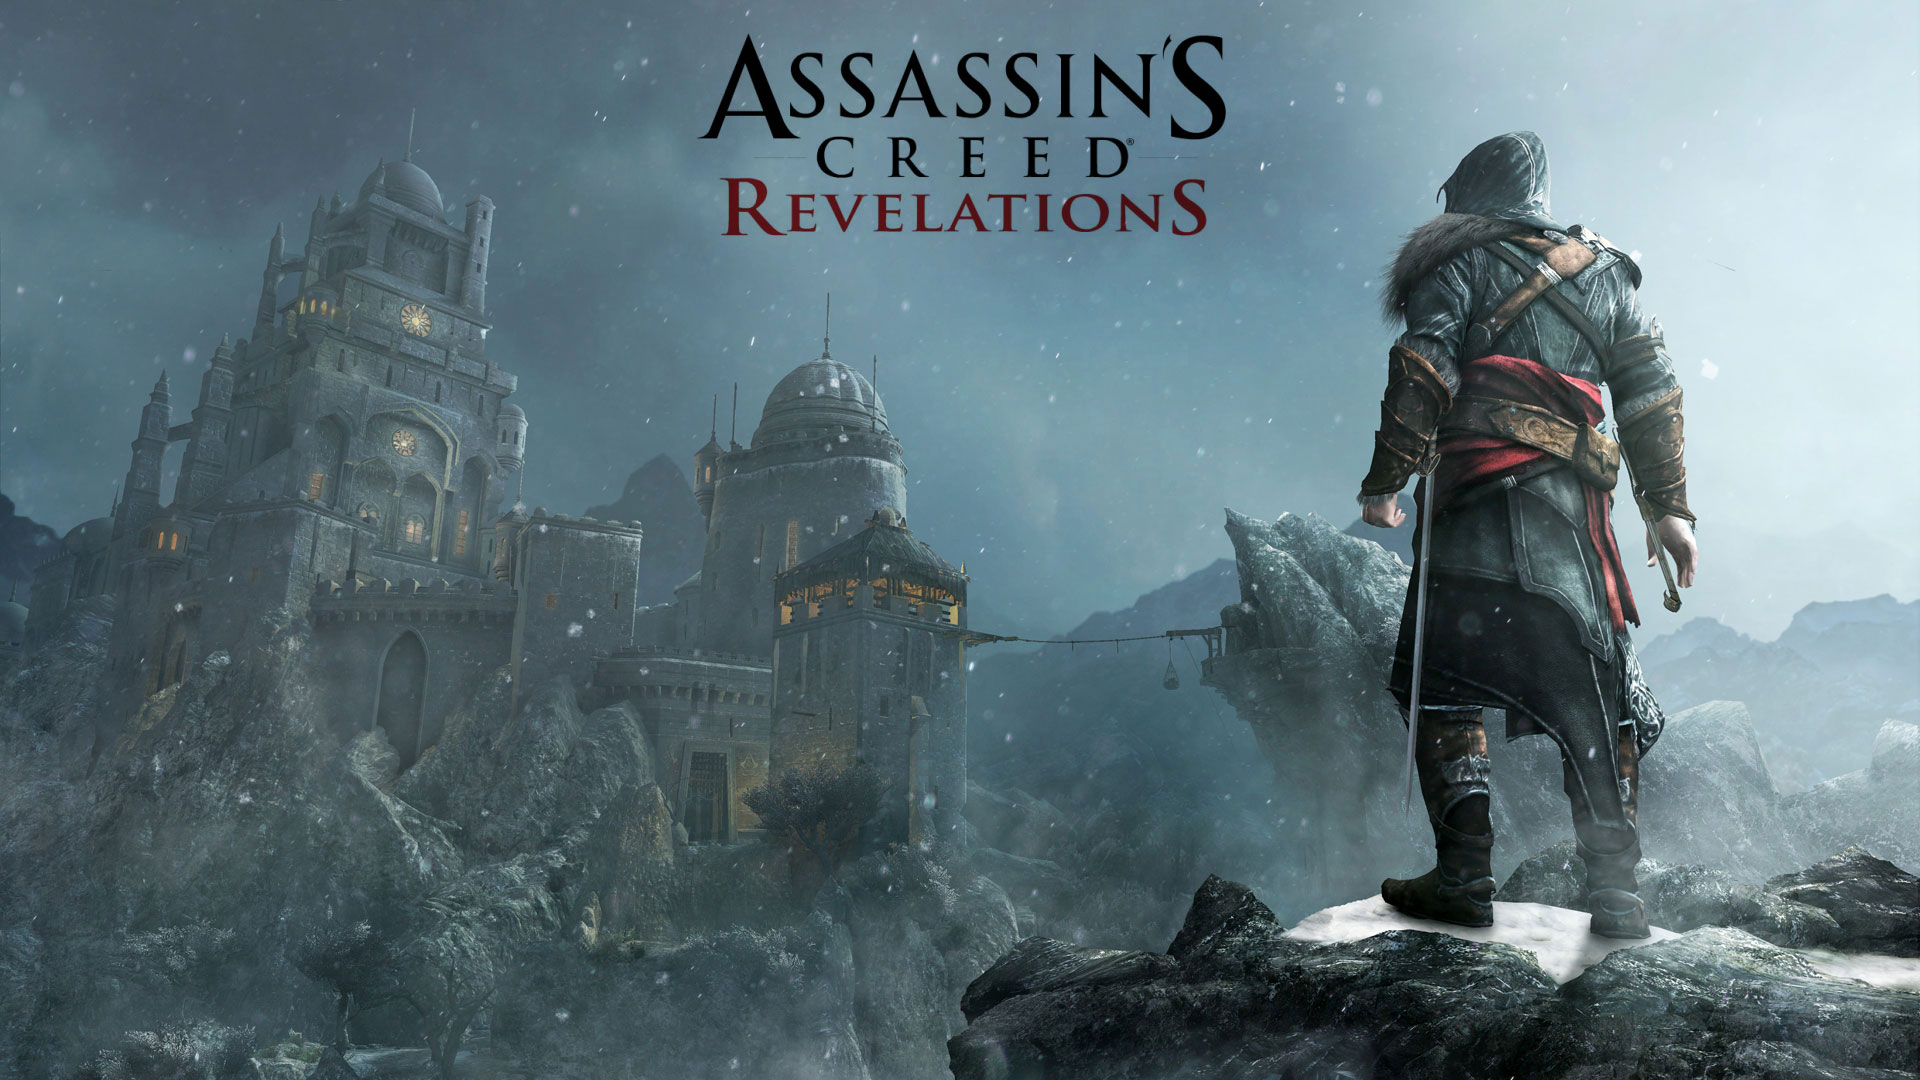 Assassins Creed Revelations Wallpapers in HD Page 2 1920x1080